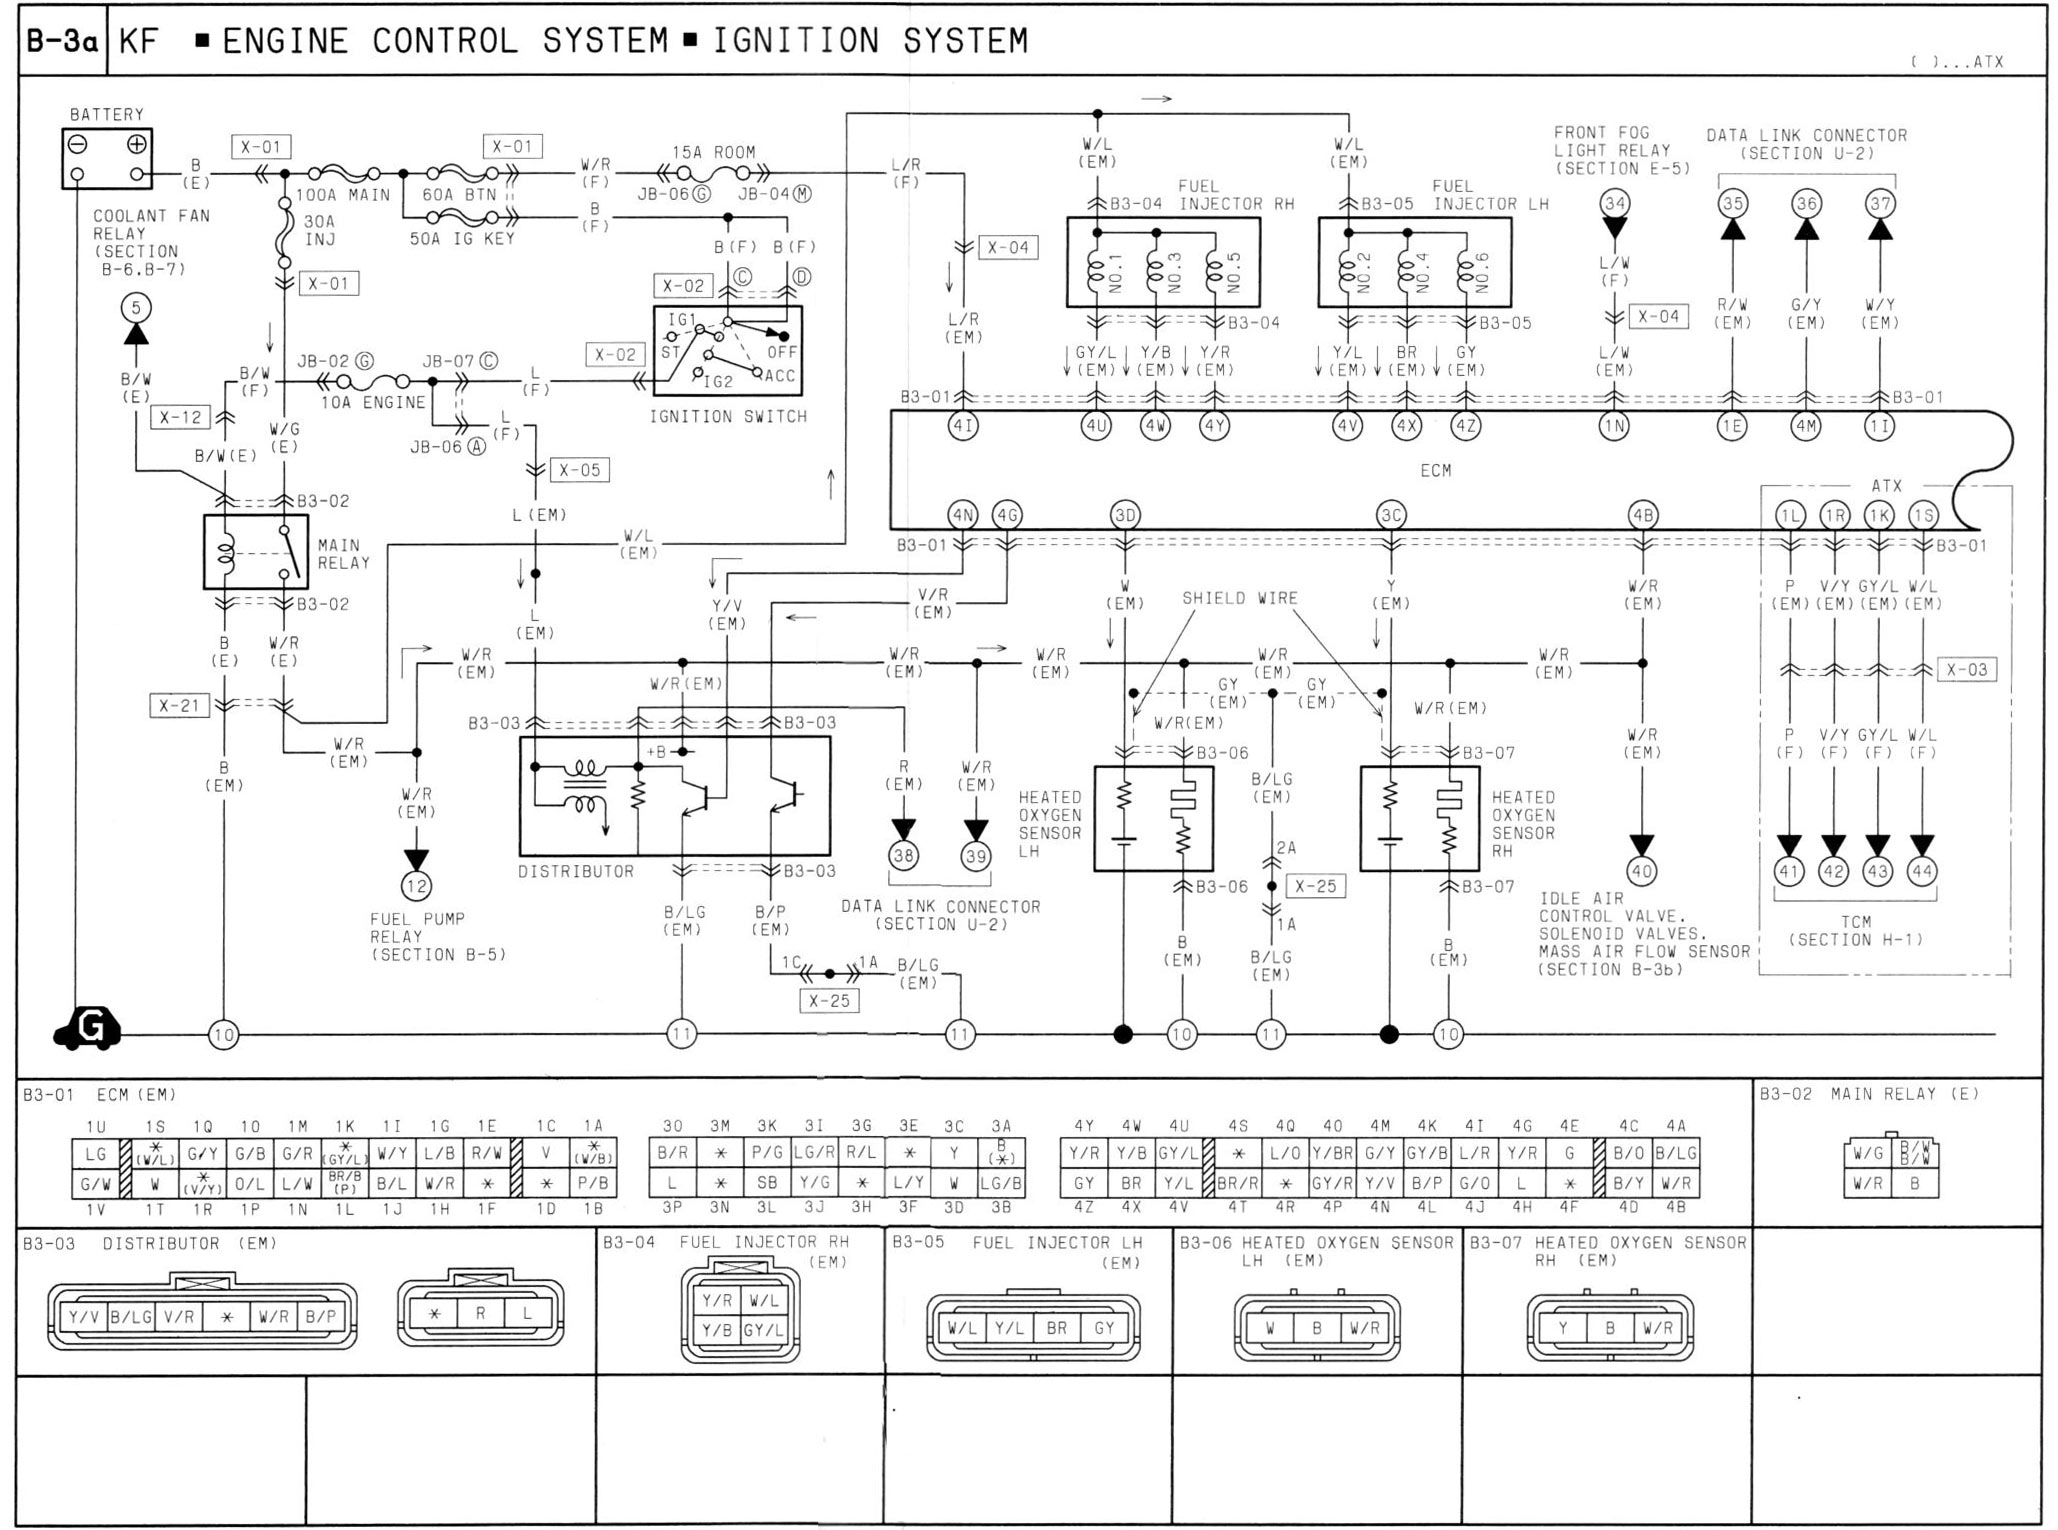 1995 mazda lantis engine wiring diagram astinagt forums. Black Bedroom Furniture Sets. Home Design Ideas